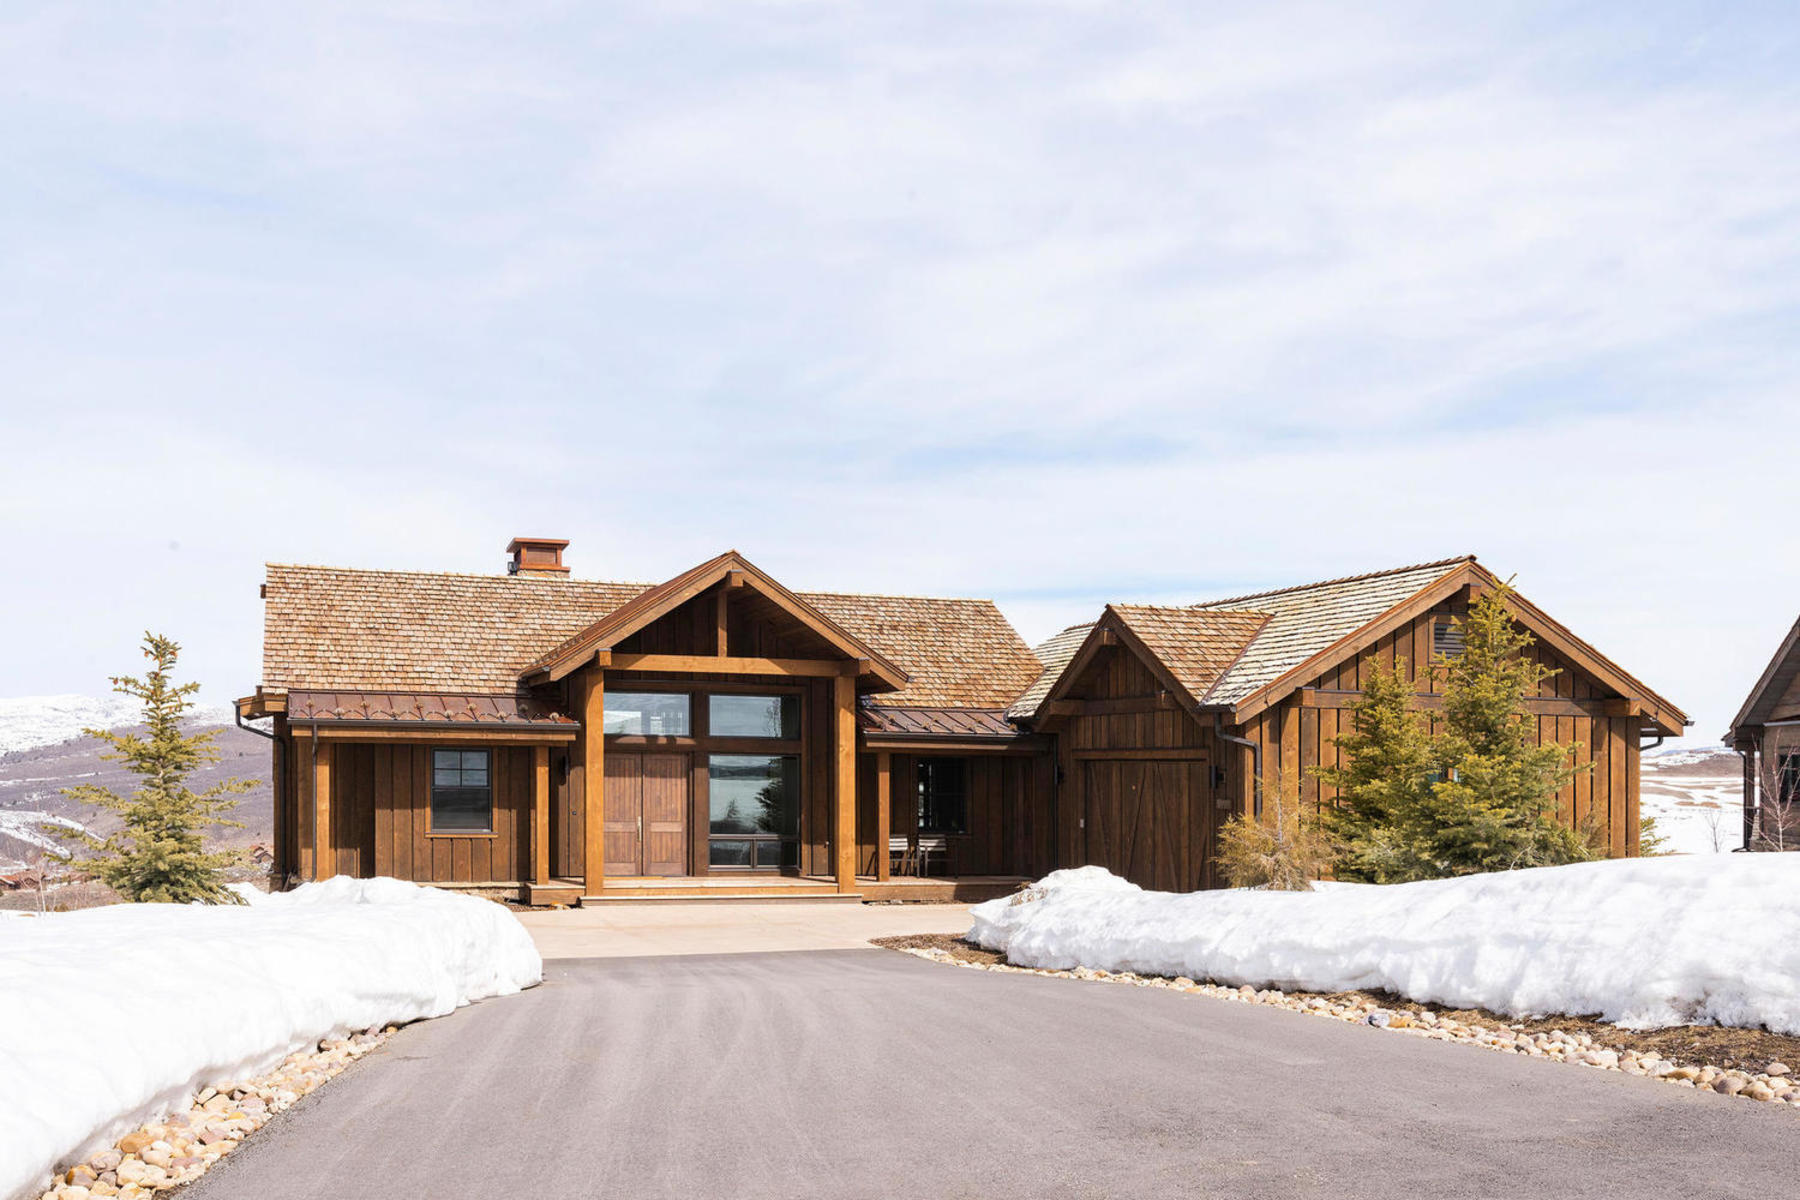 Single Family Homes for Sale at Juniper Cabin with Spectacular Views! 6314 N Whispering Way Heber City, Utah 84032 United States